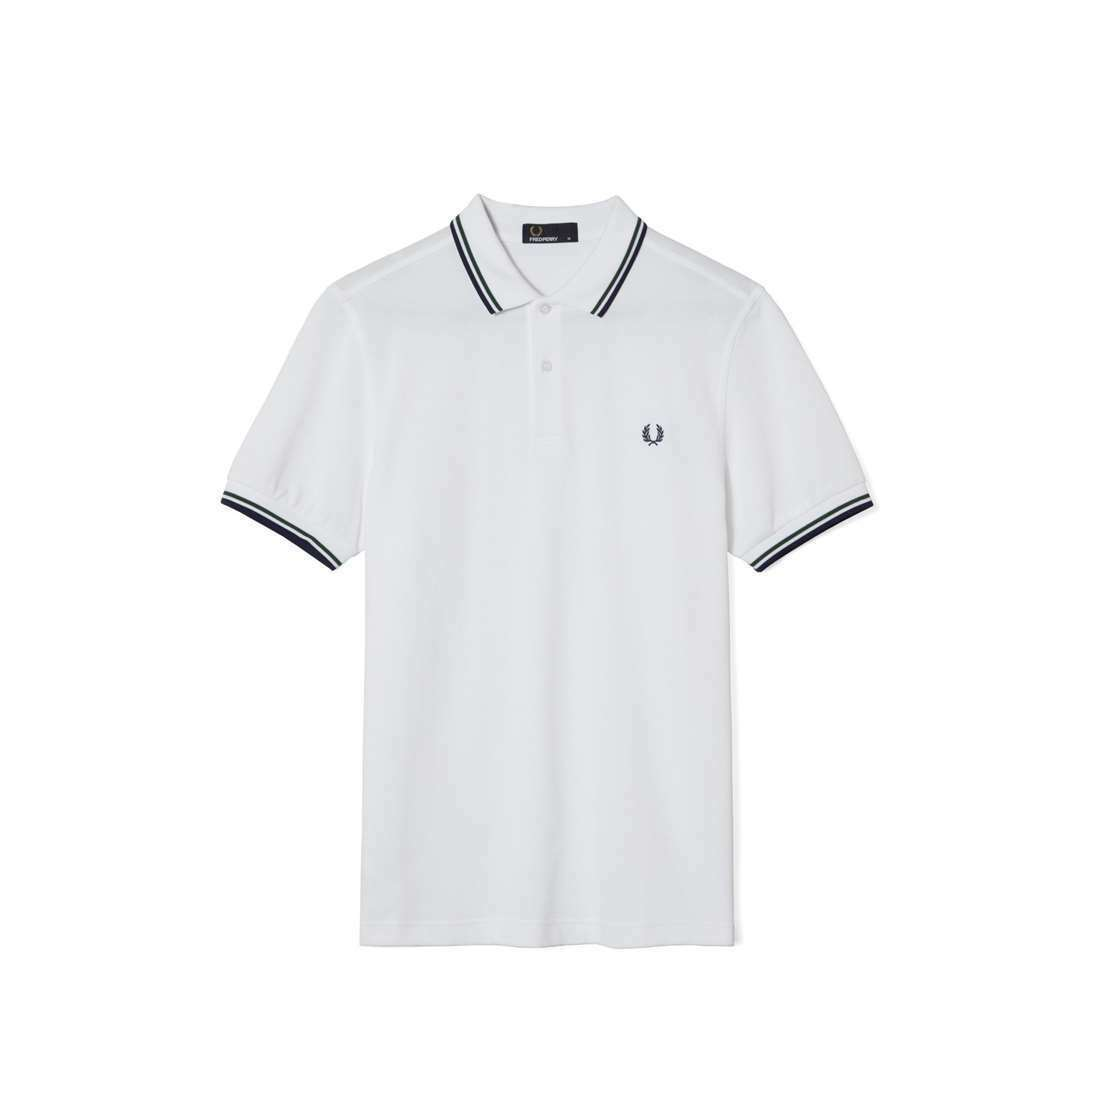 Fred Perry T shirt White 1//2 Zip Tipped Neck Retro Look Casual Polo M7384-100